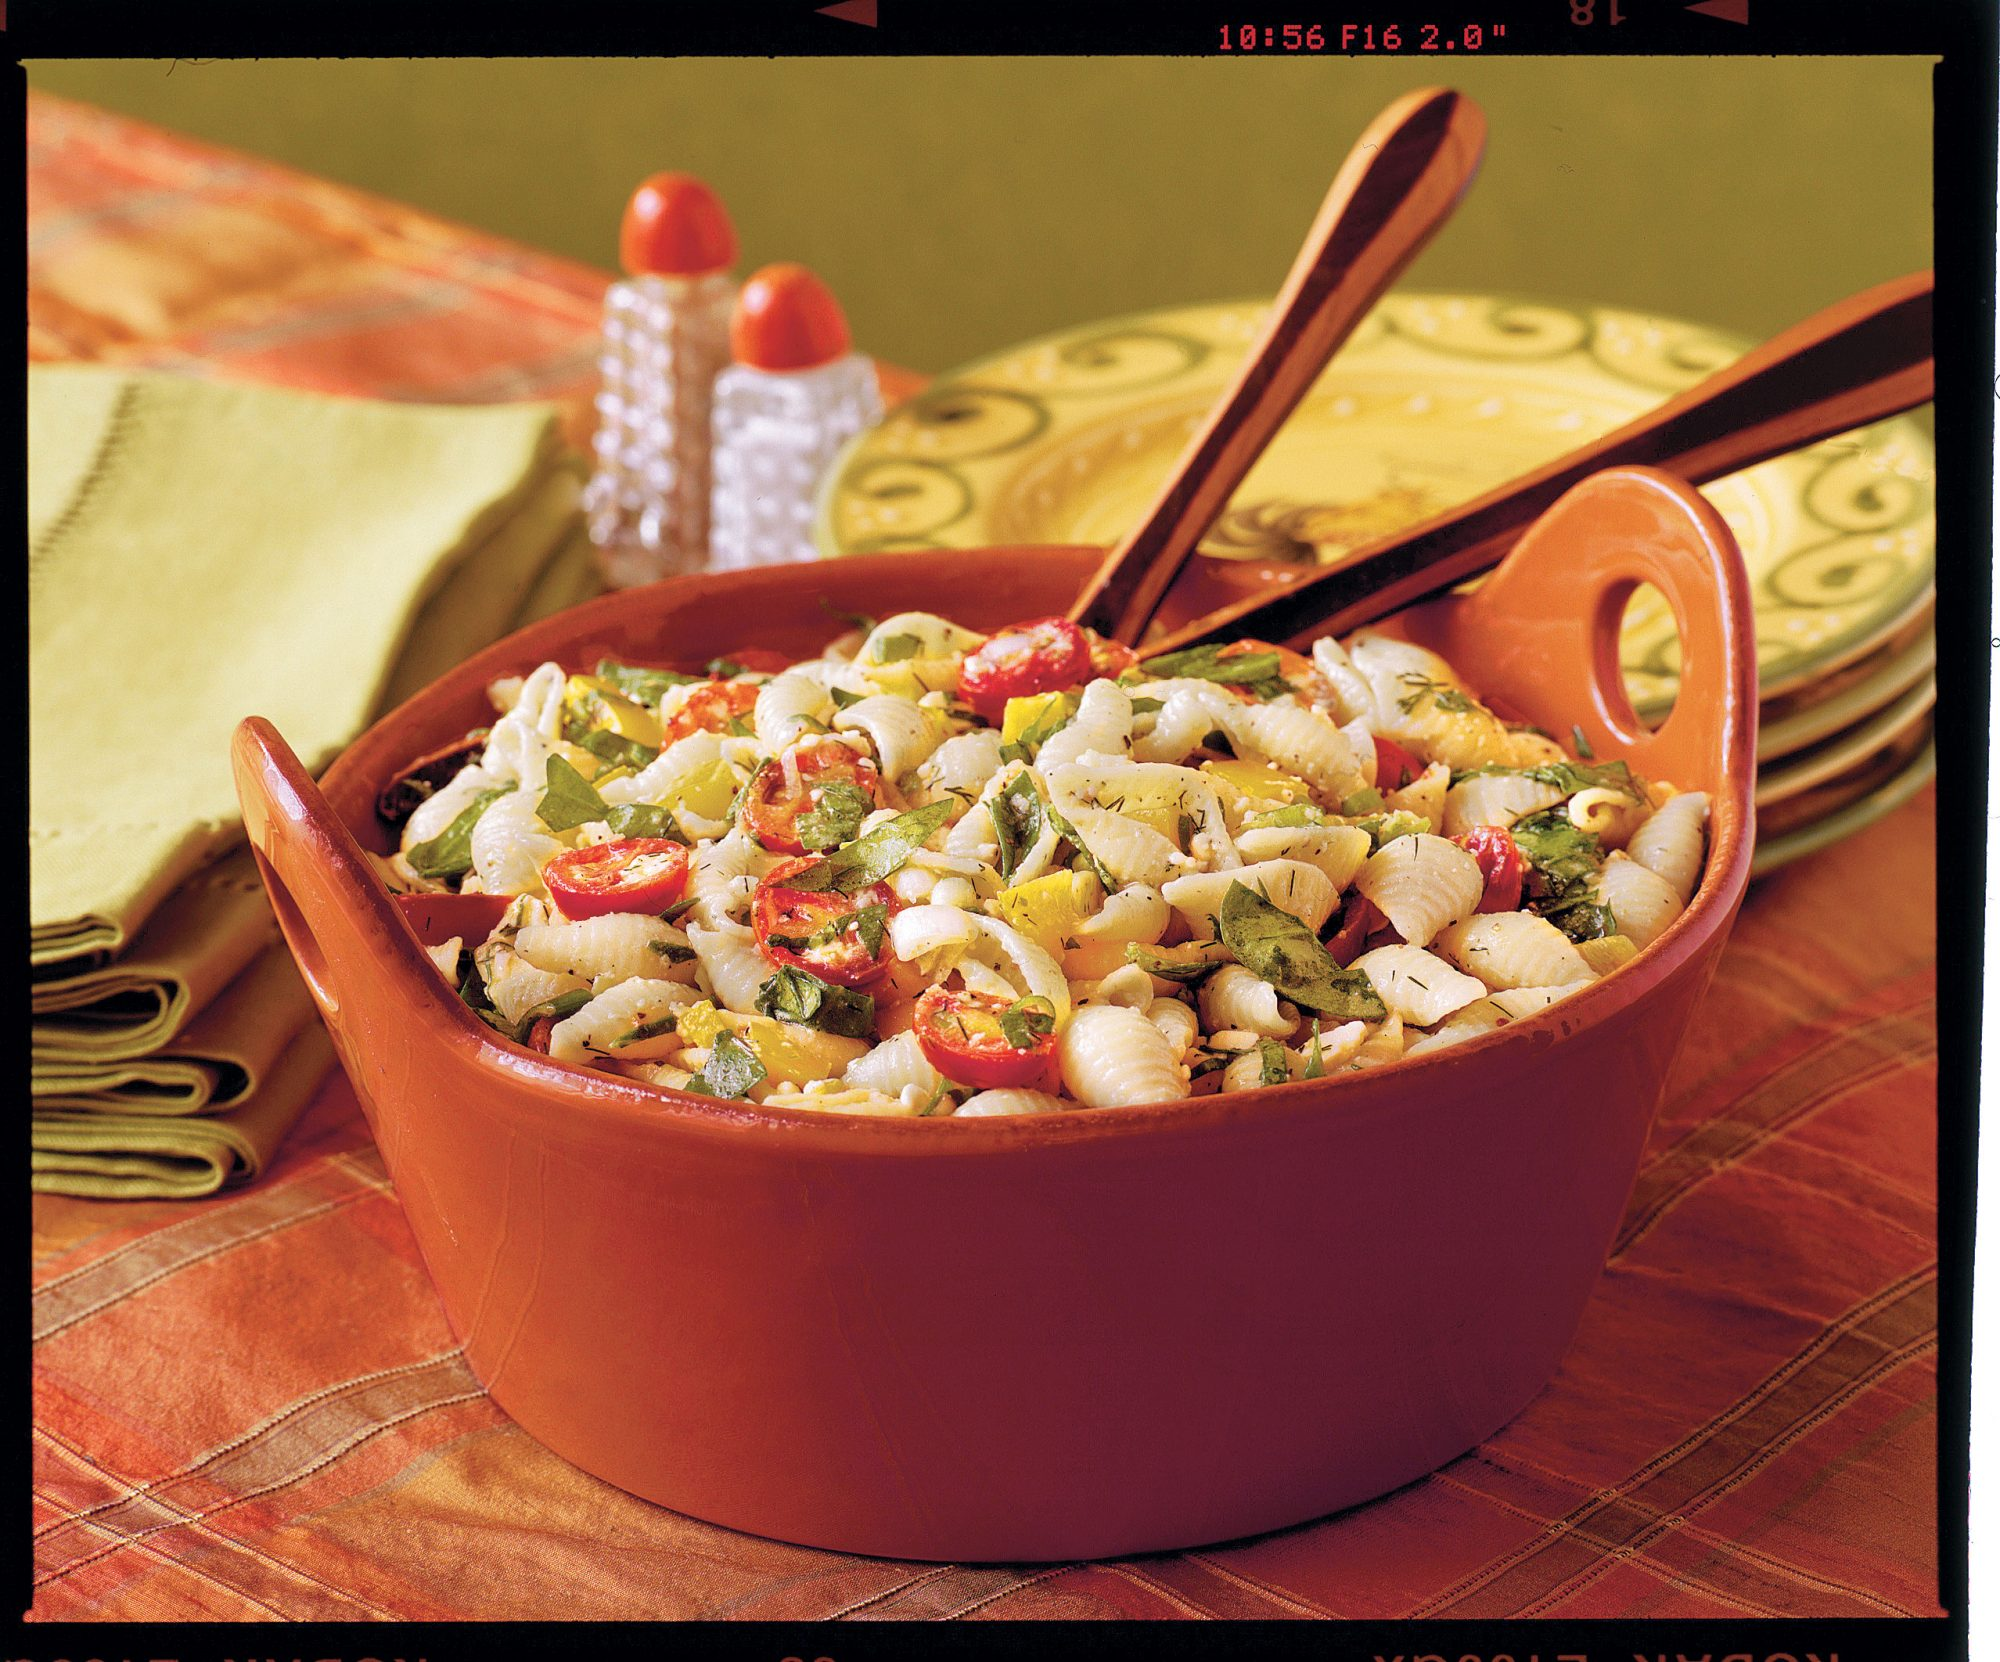 Healthy Food Recipe: Confetti Pasta Salad